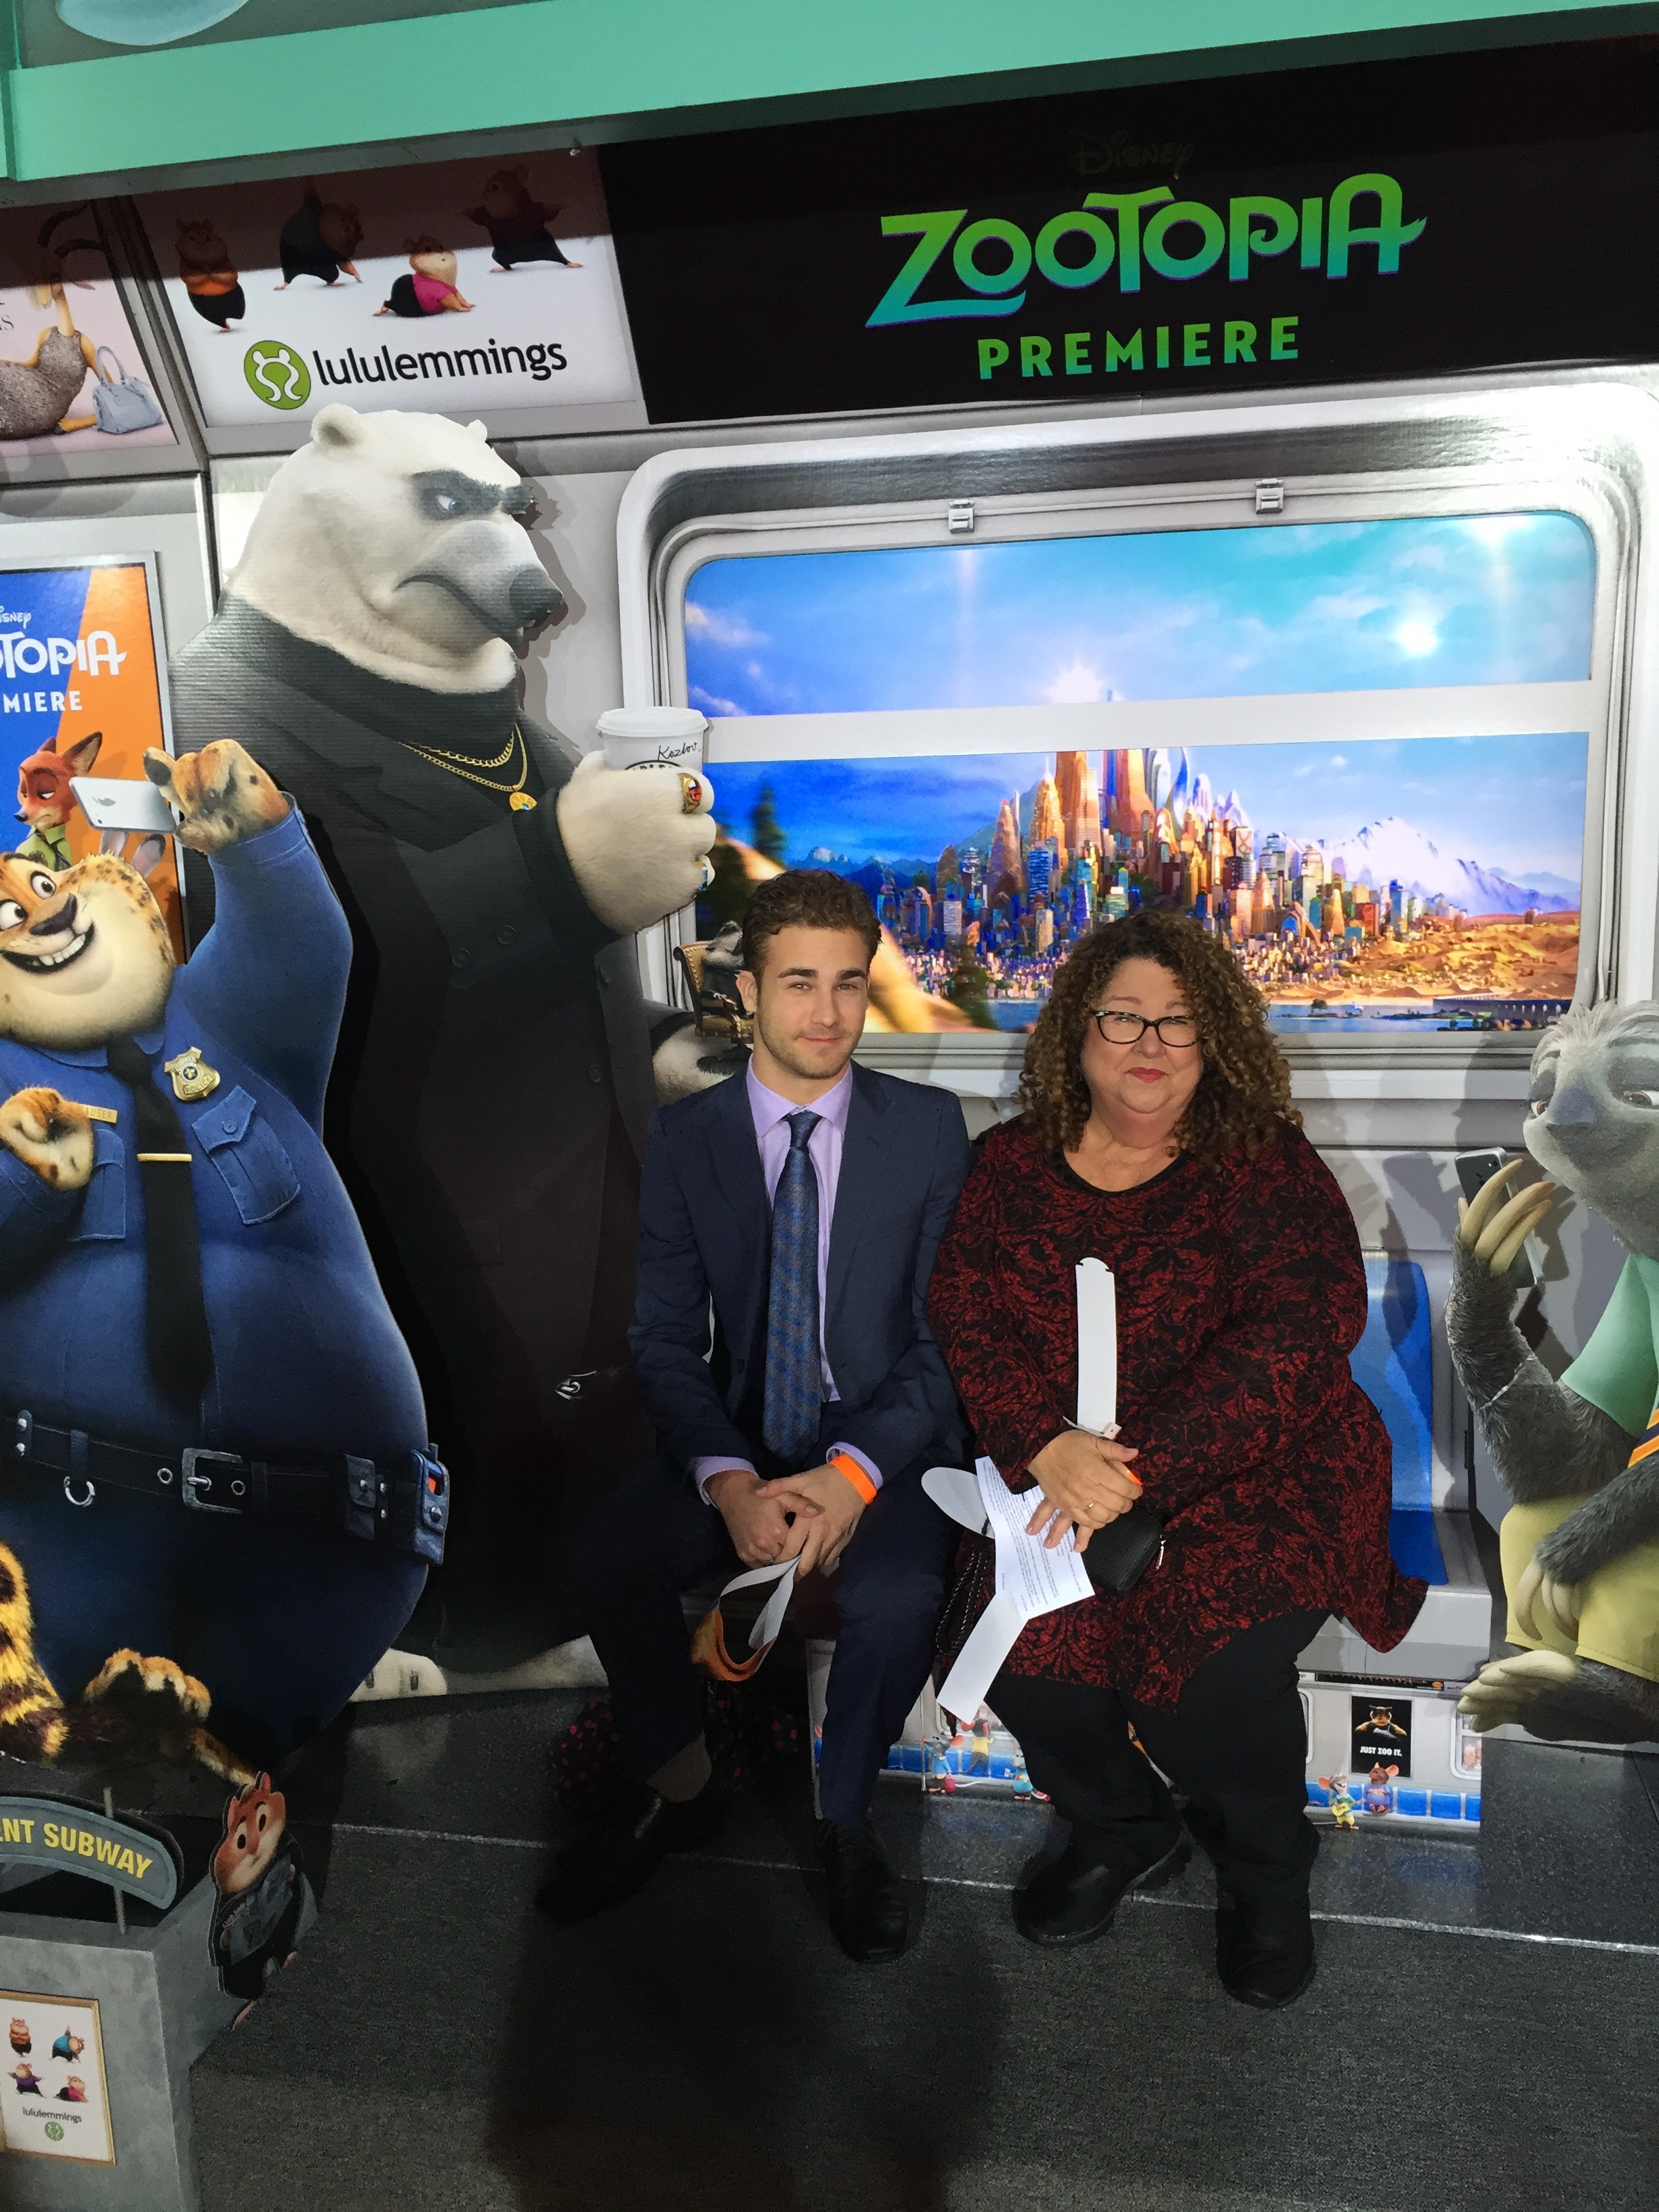 Jon Darby and Marta at the Zootopia Premiere in Hollywood.